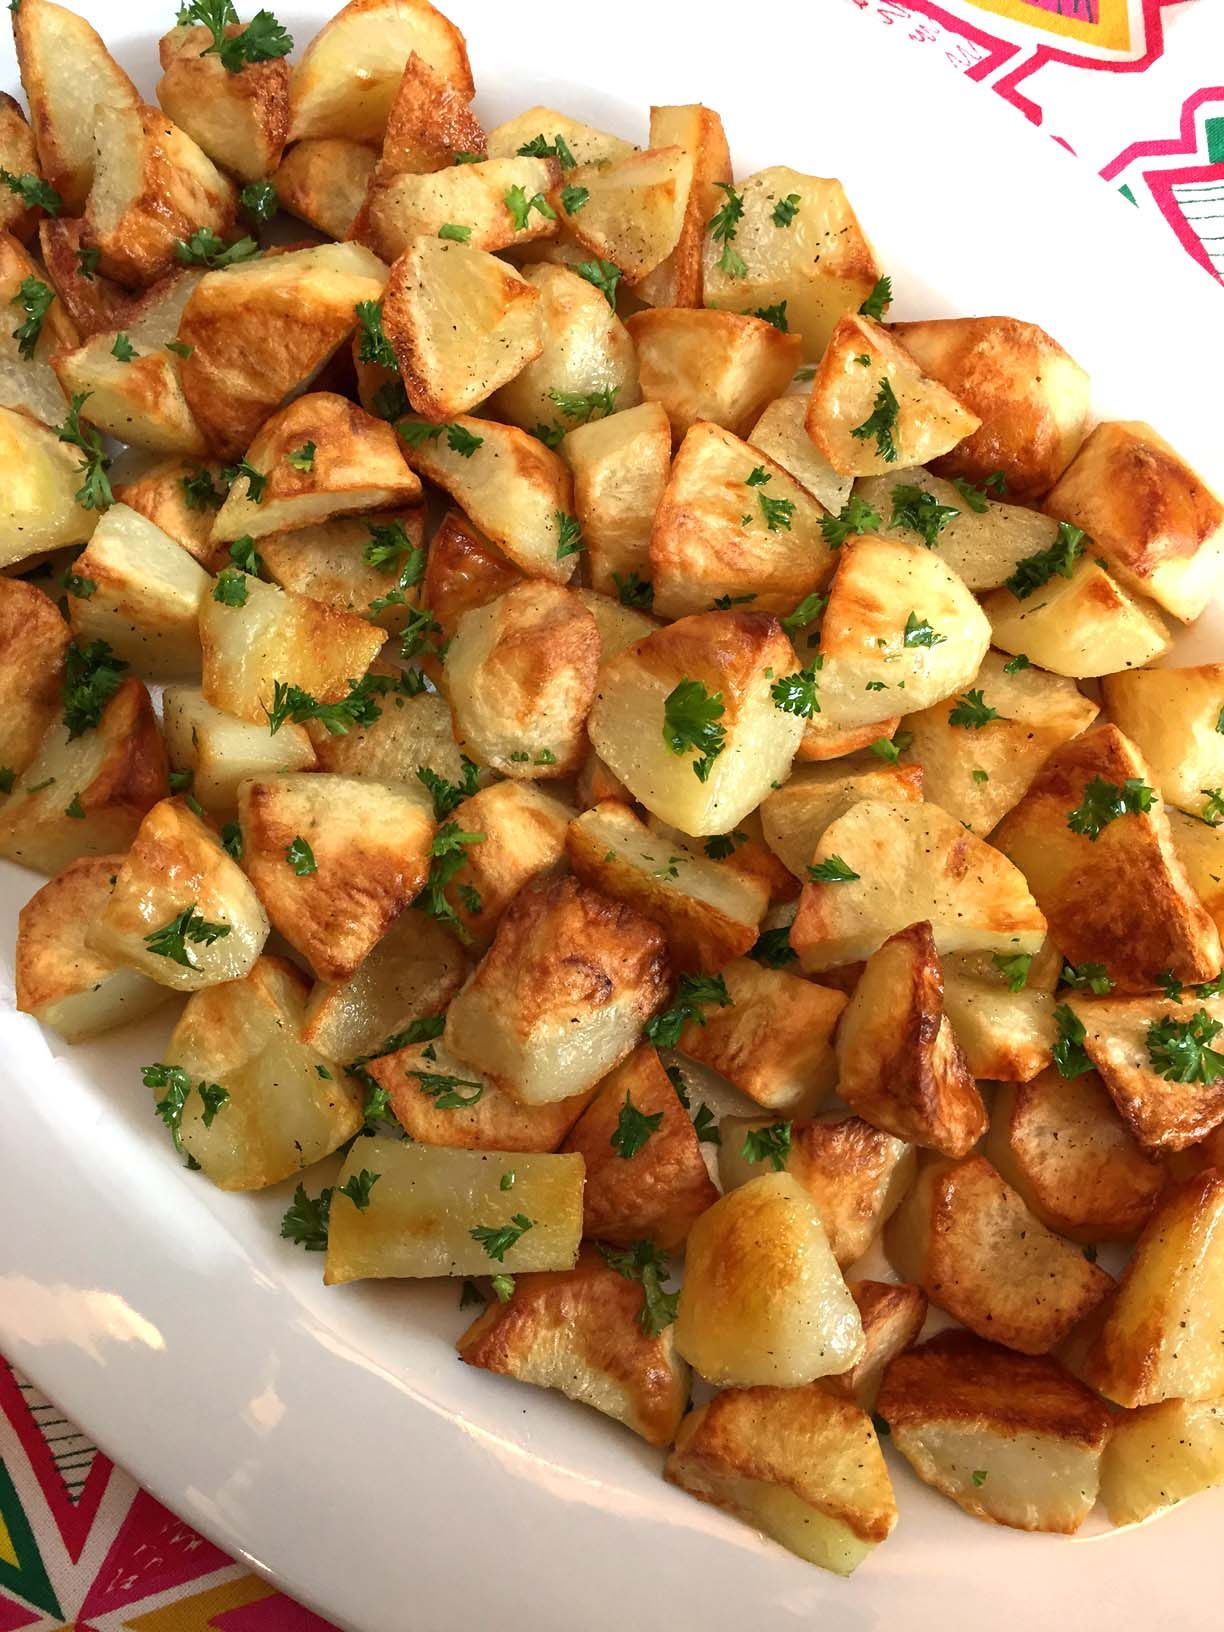 Easy Oven Roasted Potatoes Recipe Best Ever Recipe In 2020 Roasted Potato Recipes Oven Roasted Potatoes Oven Roasted Potatoes Easy